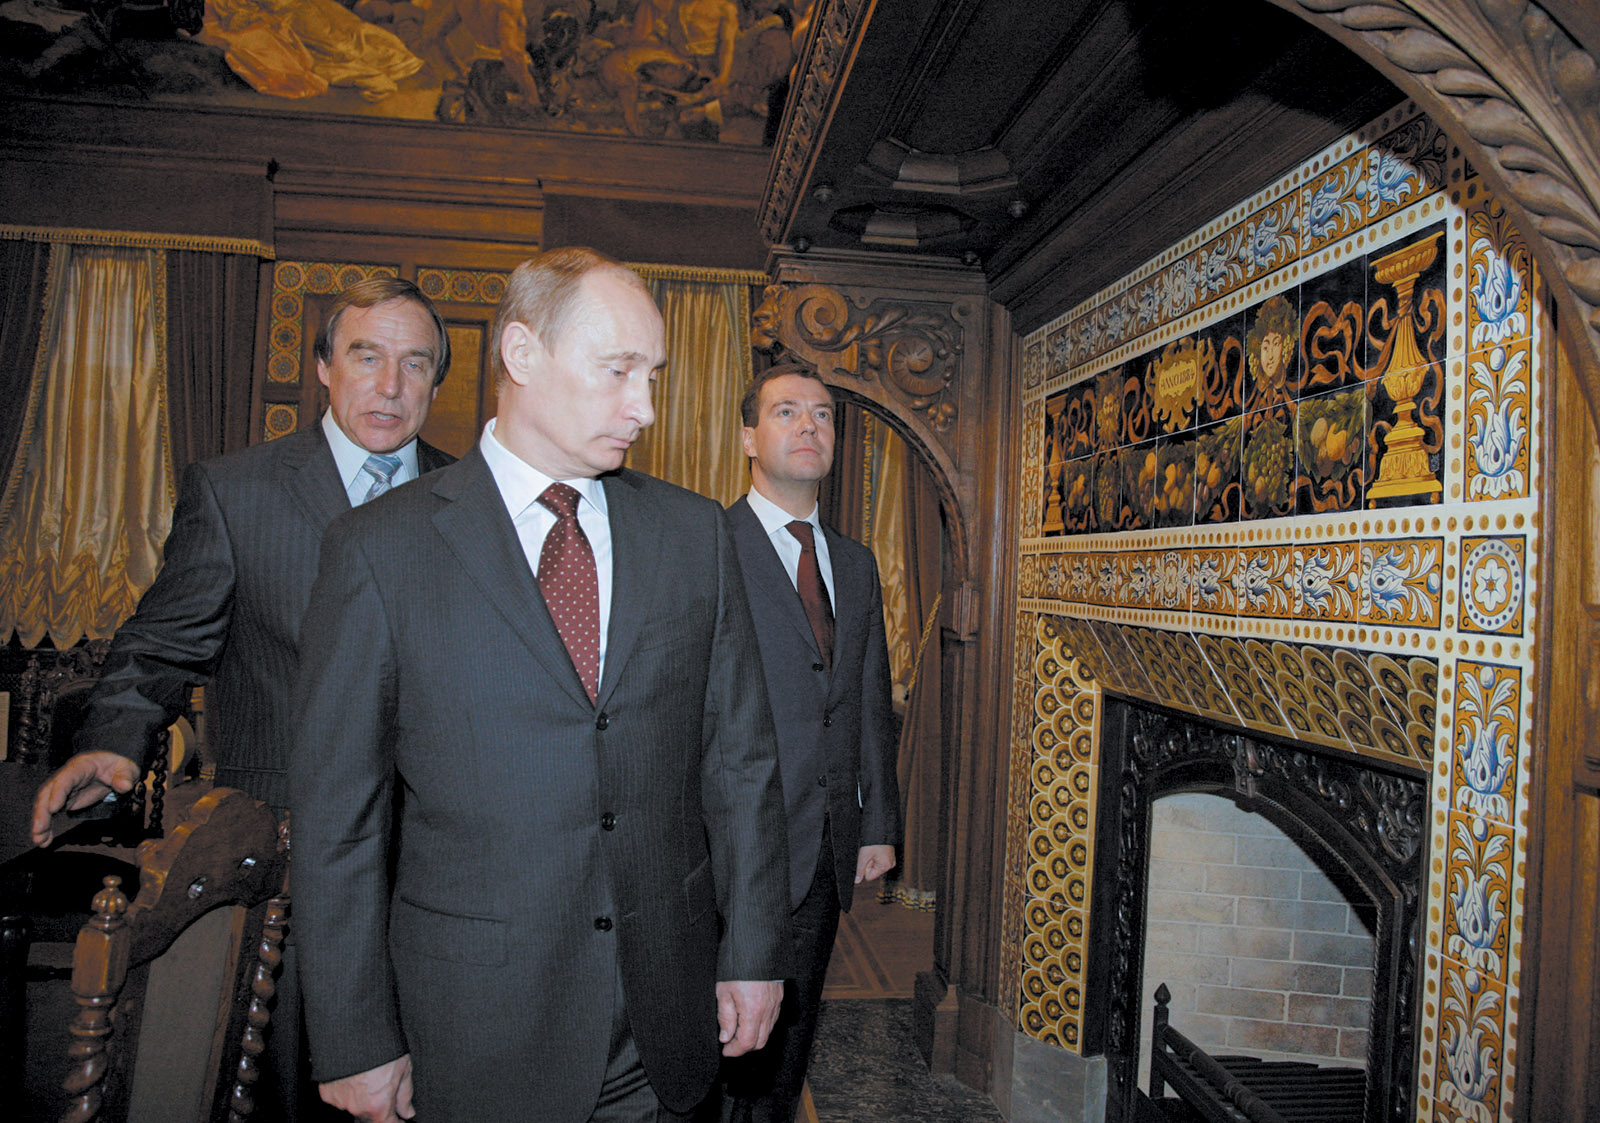 The cellist Sergei Roldugin, left, with Vladimir Putin and Dmitry Medvedev at the St. Petersburg House of Music, November 2009. The Panama Papers show that Roldugin, one of Putin's old friends, is linked to a number of offshore companies worth hundreds of millions of dollars.